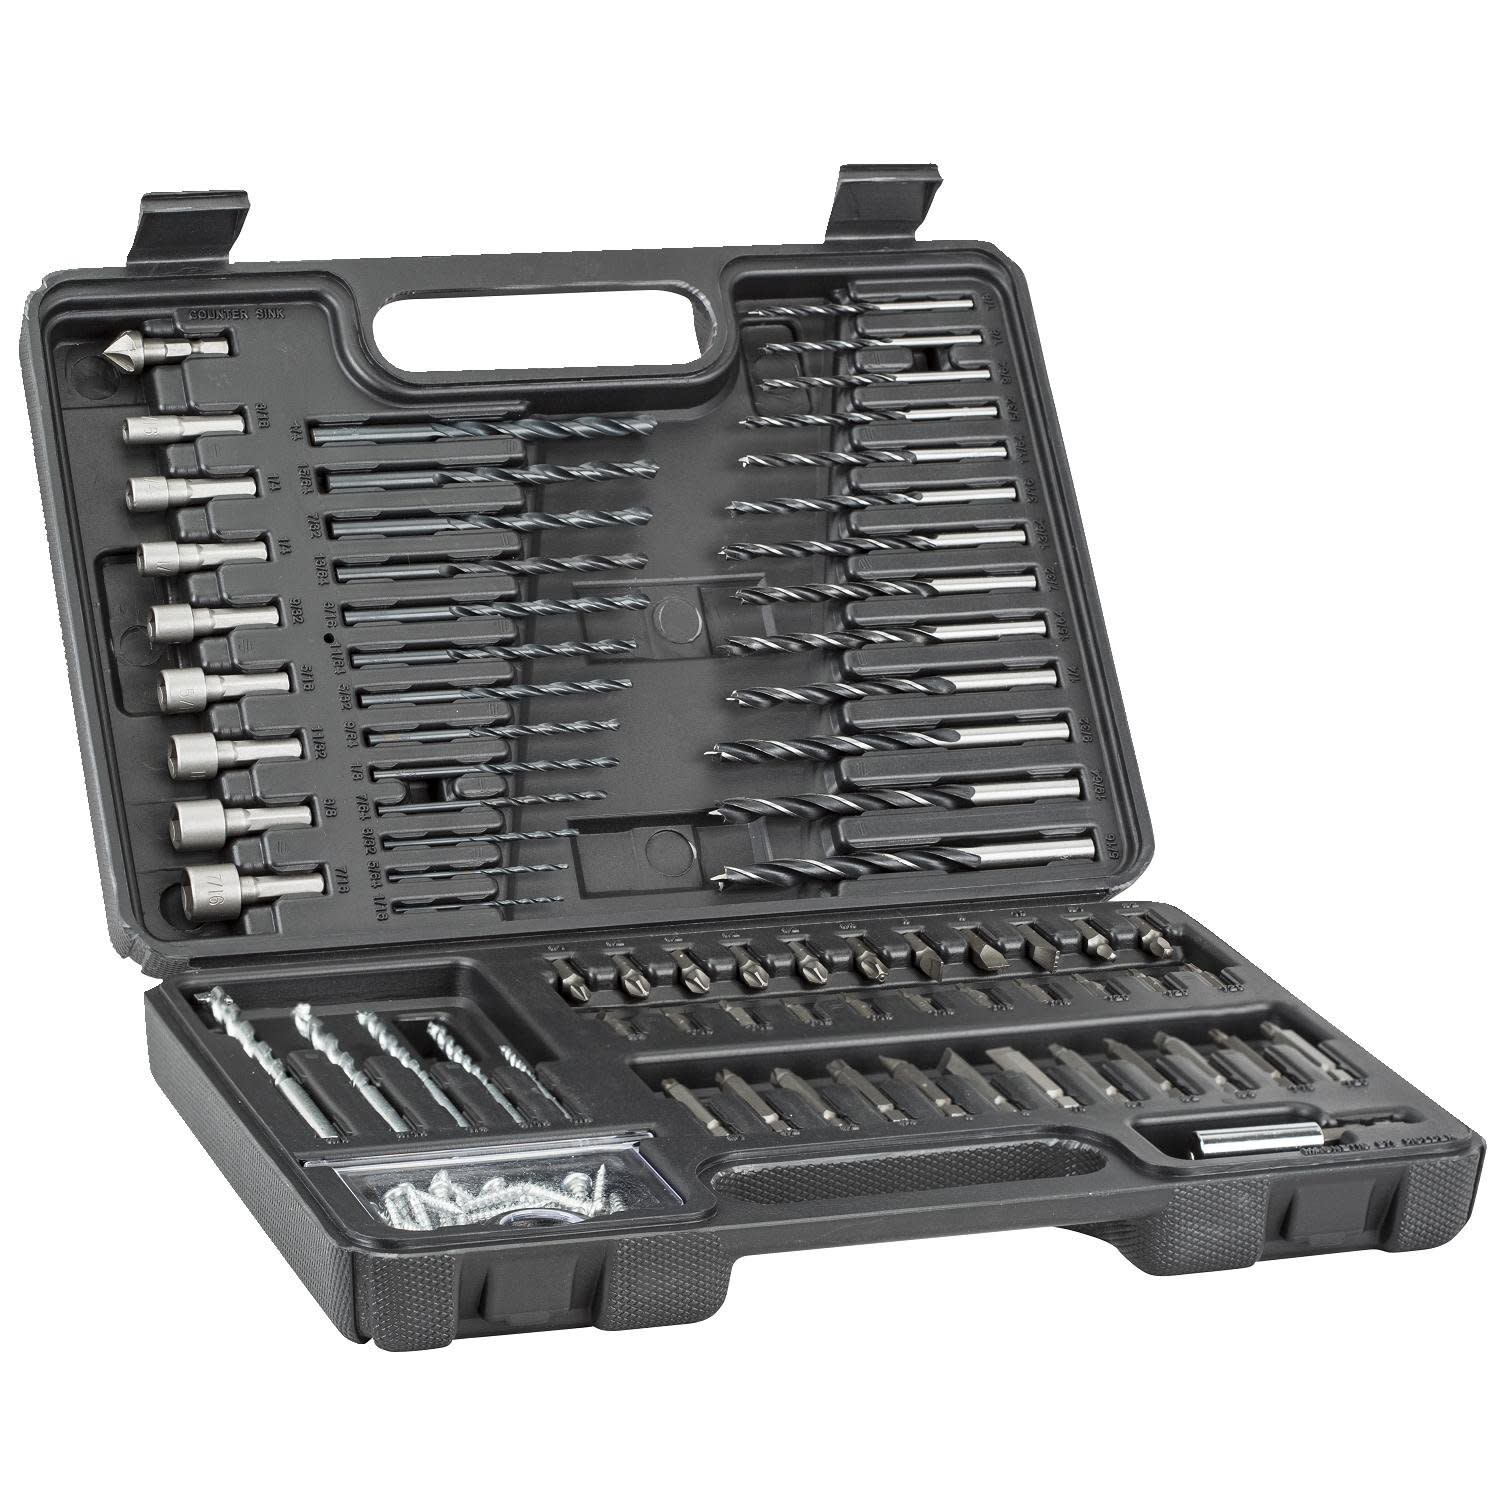 Black Decker Drill Bits Set Bit For Wood, Metal, Plastic And Masonry With Case